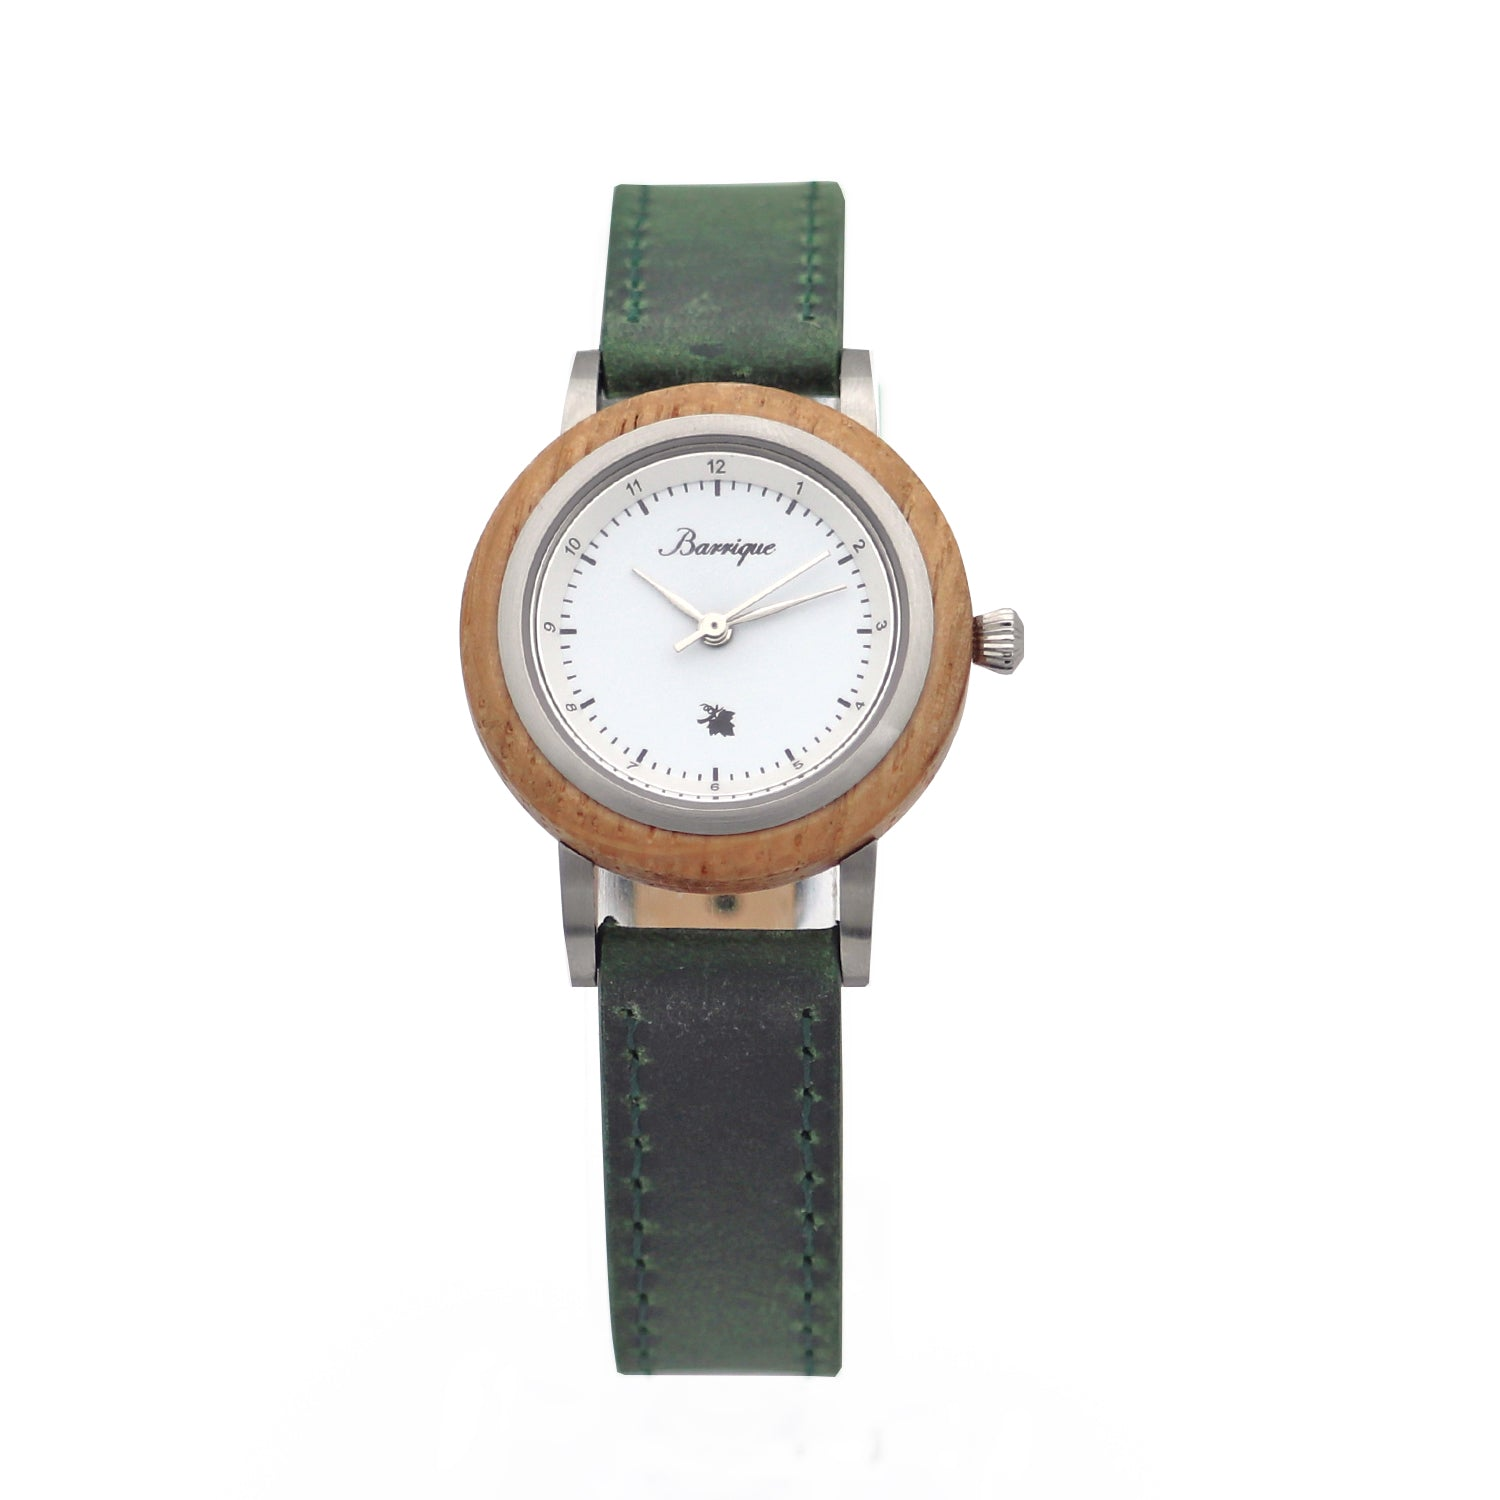 Grapevine Barrique wine barrel wood watch leather green strap women 30mm